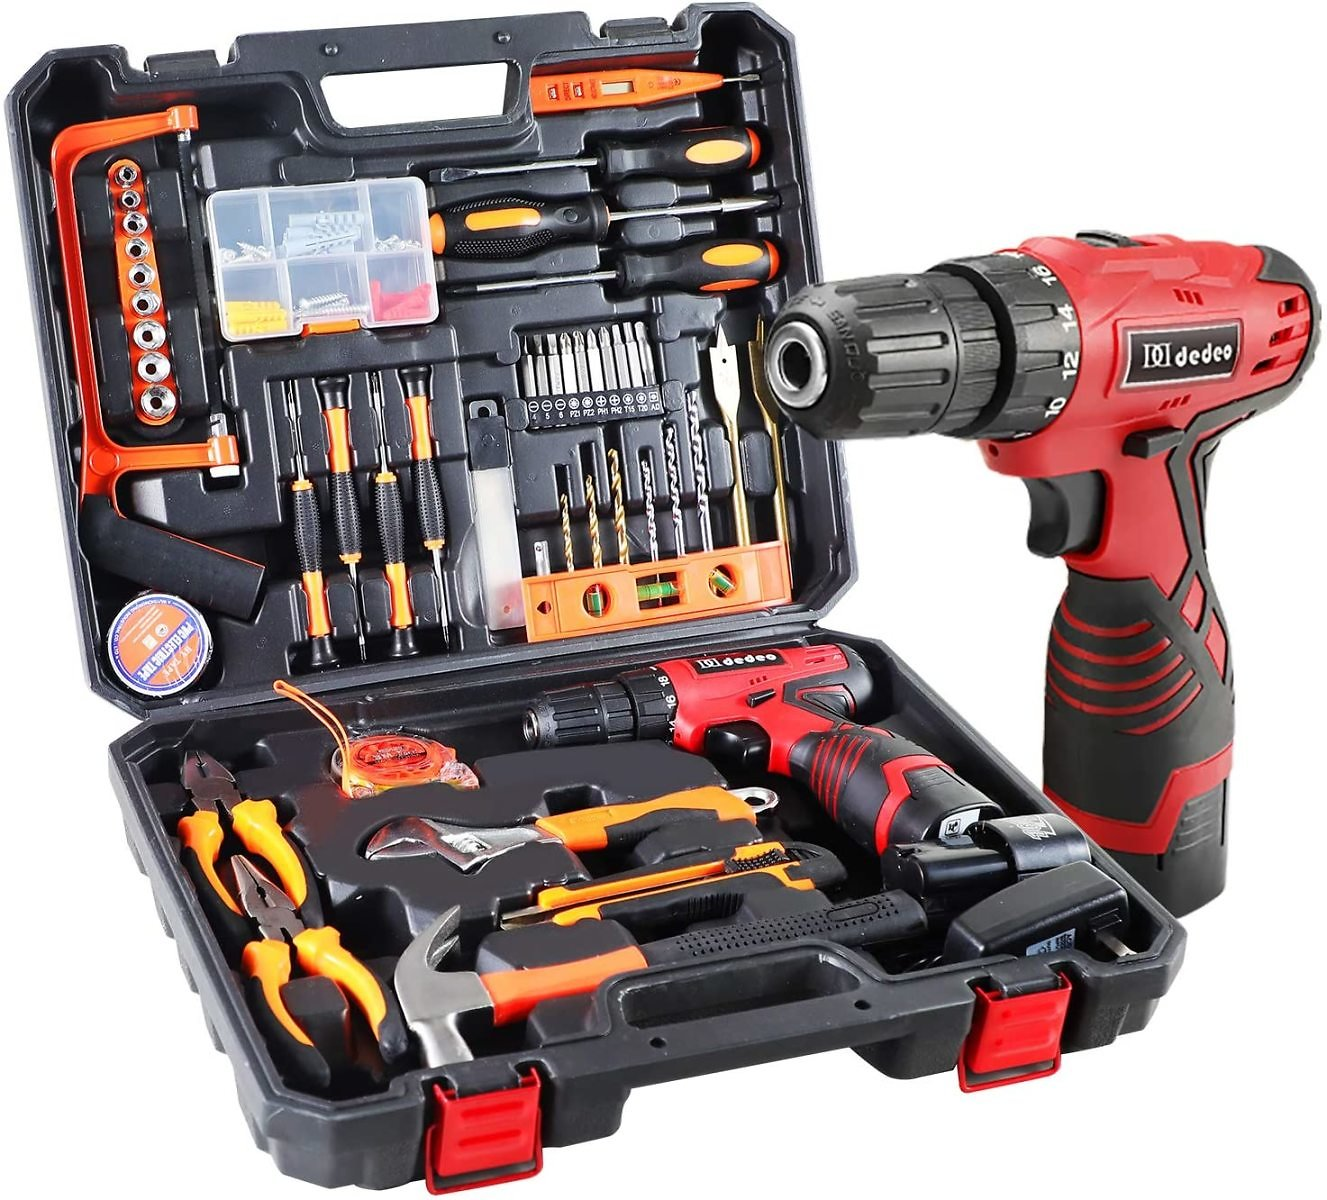 Dedeo Cordless Hammer Drill Tool Kit, 60Pcs Household Power Tools Drill Set with 16.8V Lithium Driver Claw Hammer Wrenches Plier